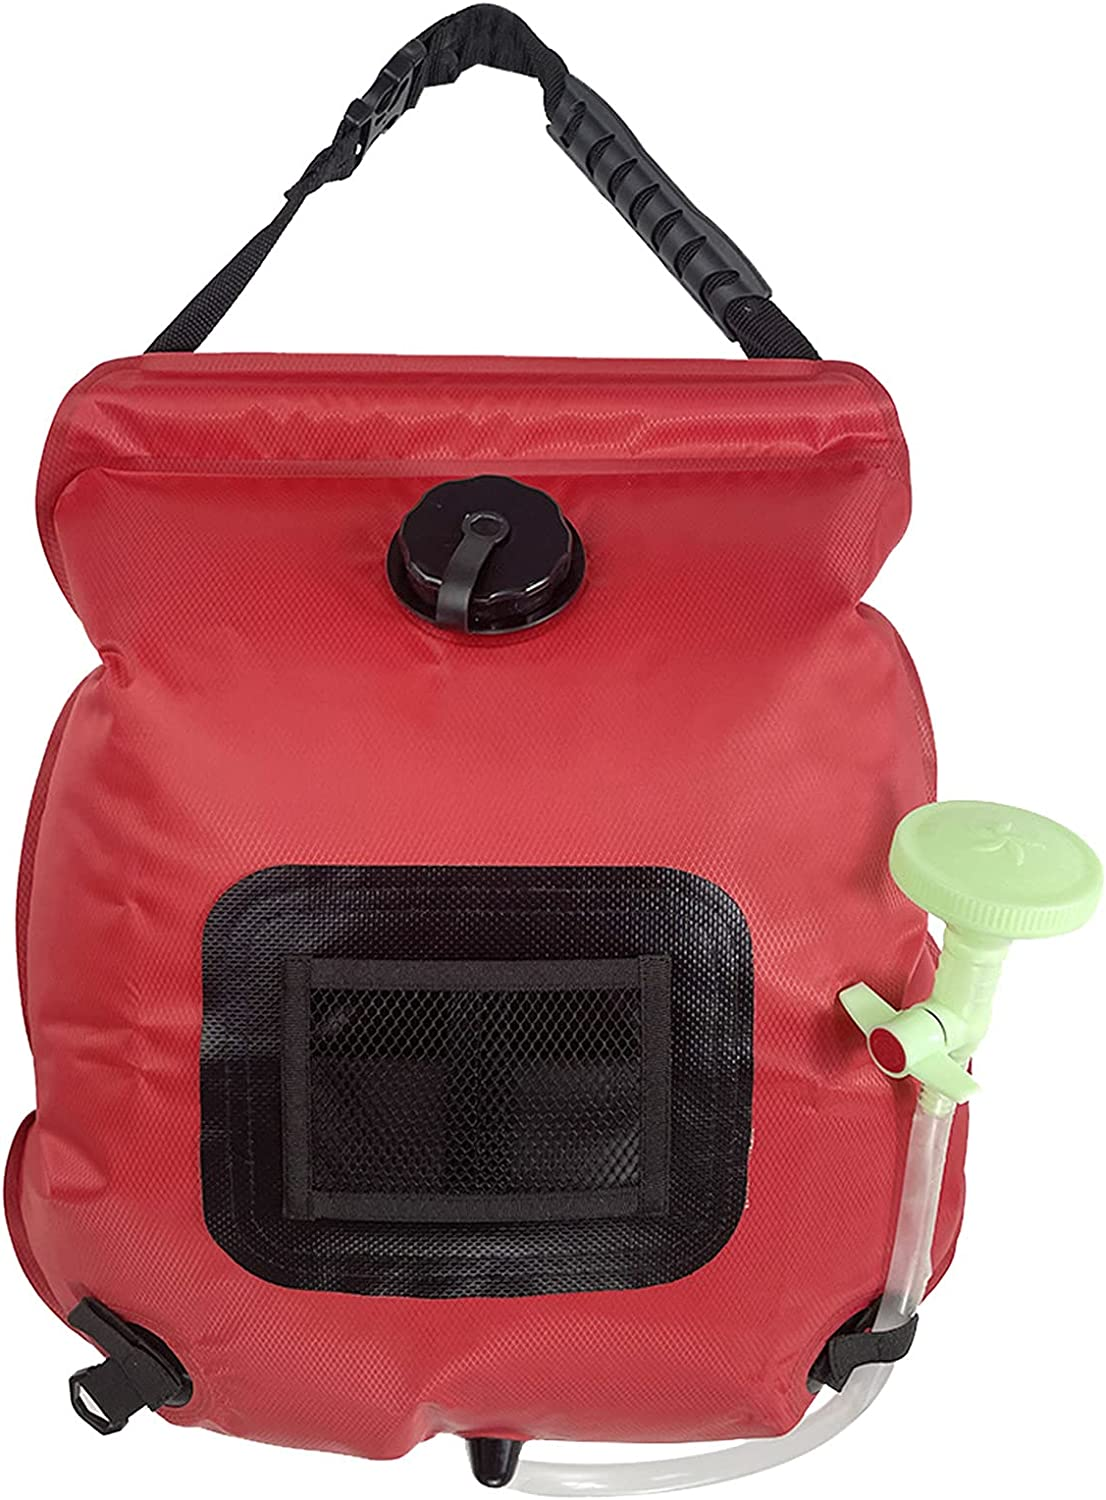 Solar Shower Bag 5 Max 54% OFF Gallons Surprise price 20L Heating Hot Portable Water Campi